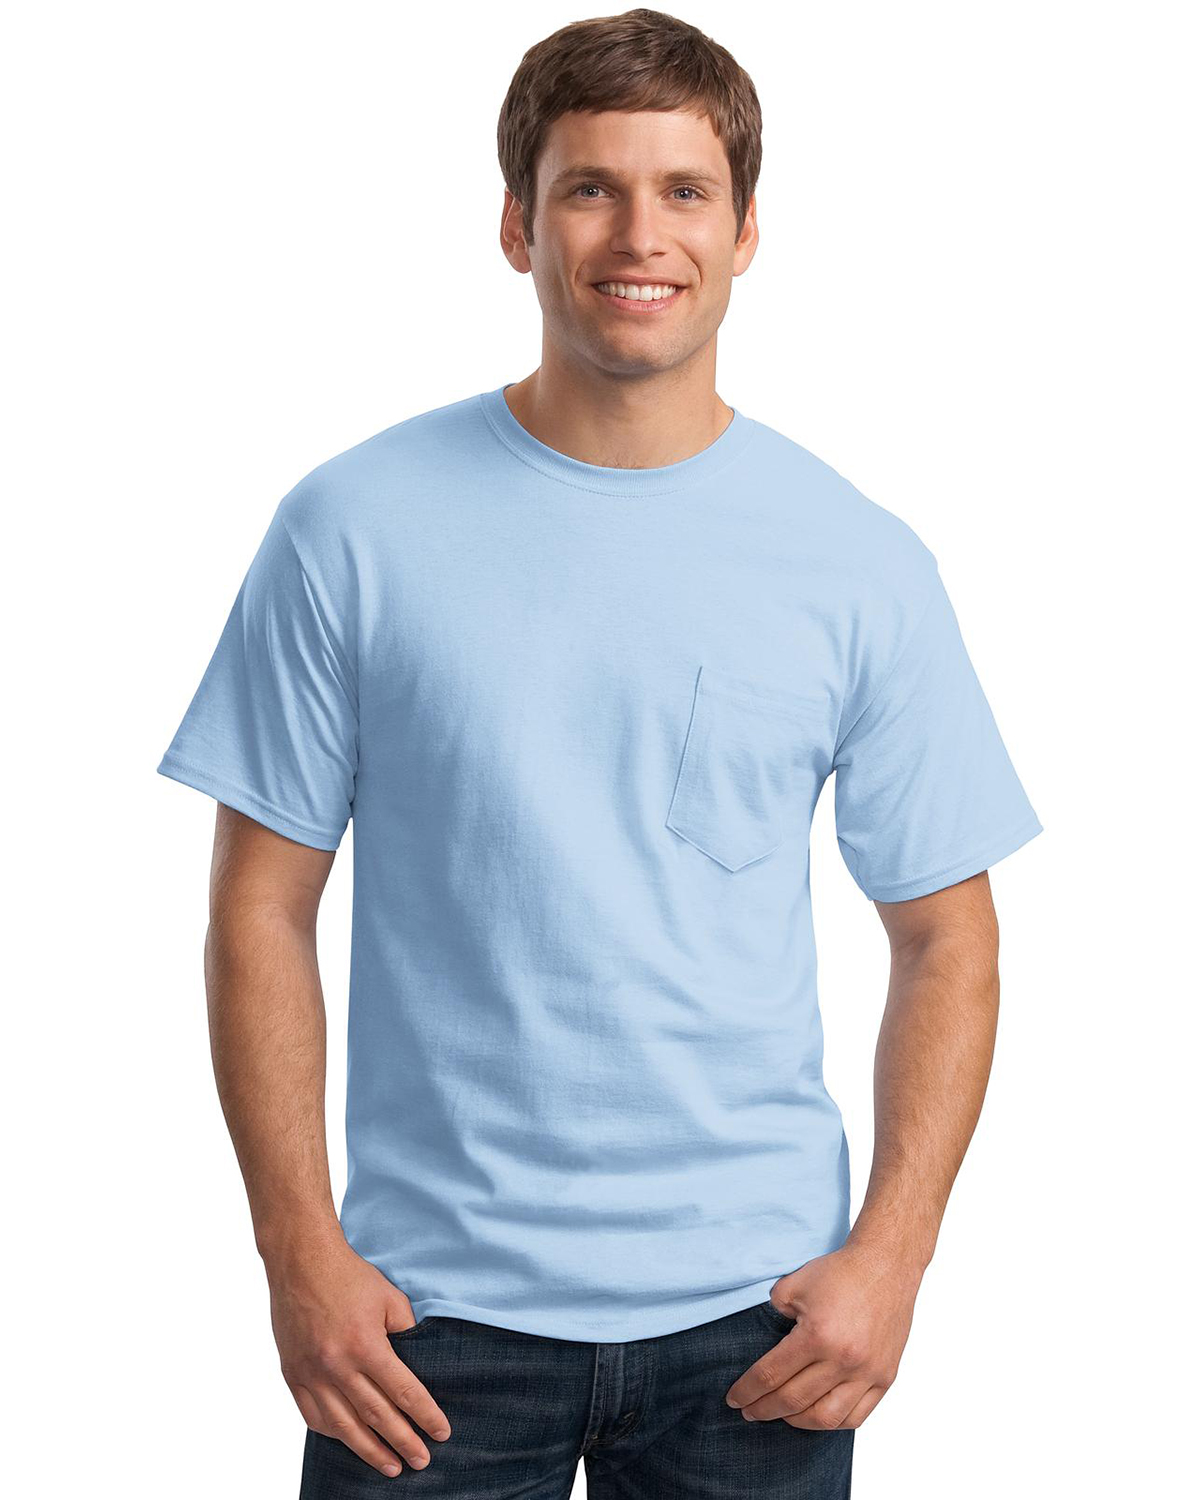 Mens Tagless 100 Comfortsoft Cotton T Shirt With Pocket